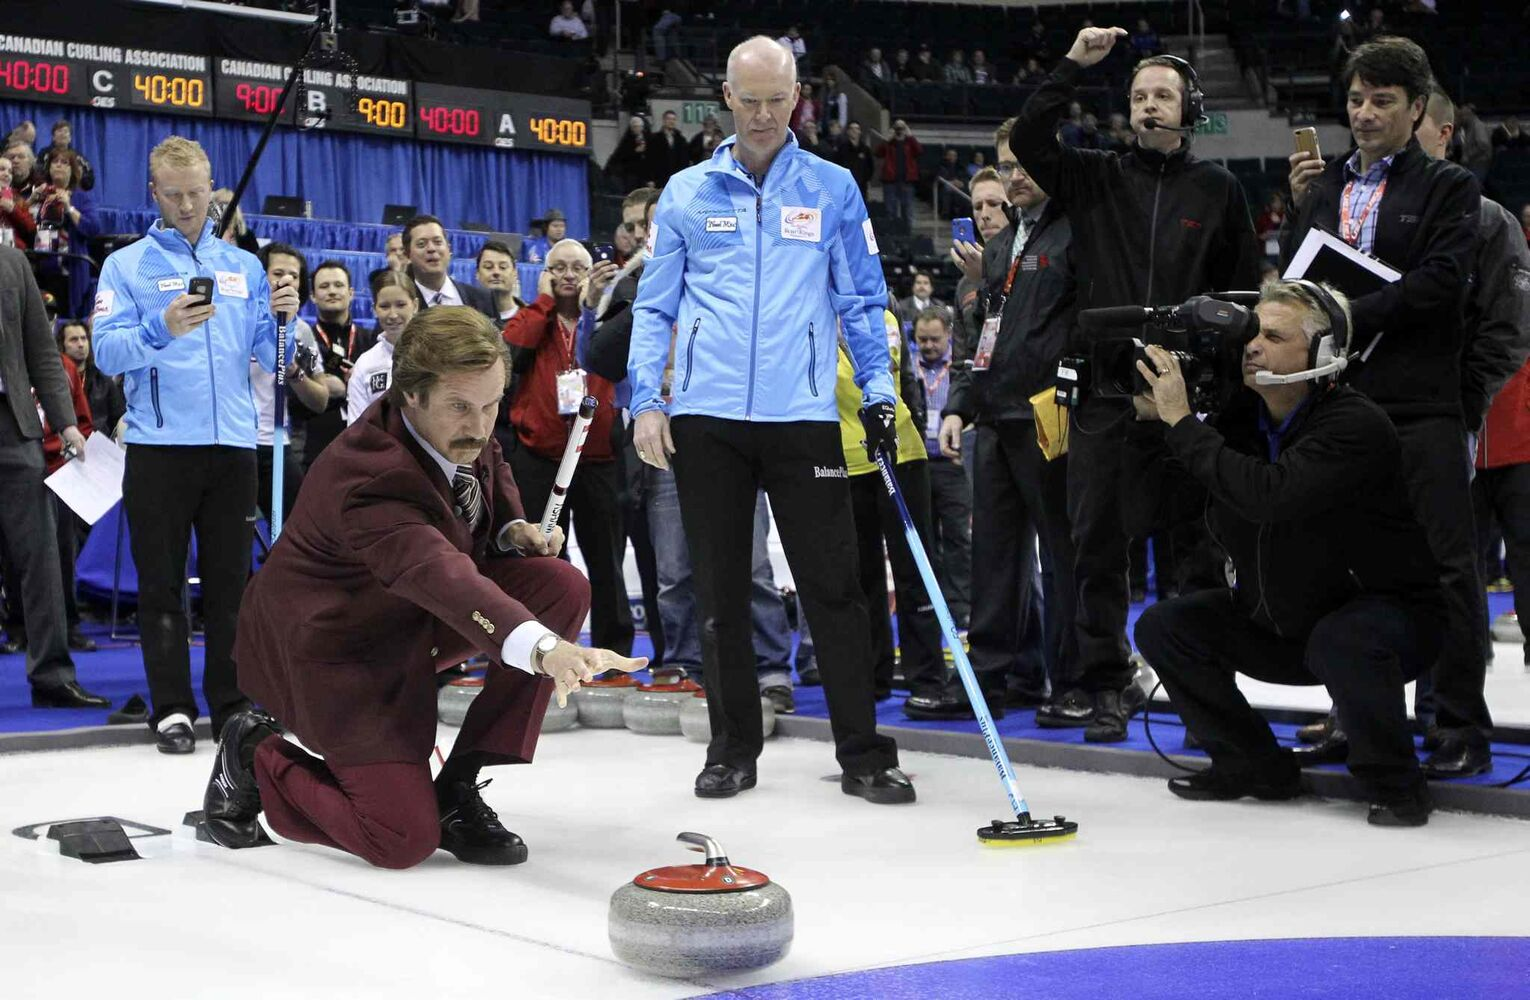 Ron Burgundy tosses the first rock at Roar of the Rings. (Mike Deal / Winnipeg Free Press)